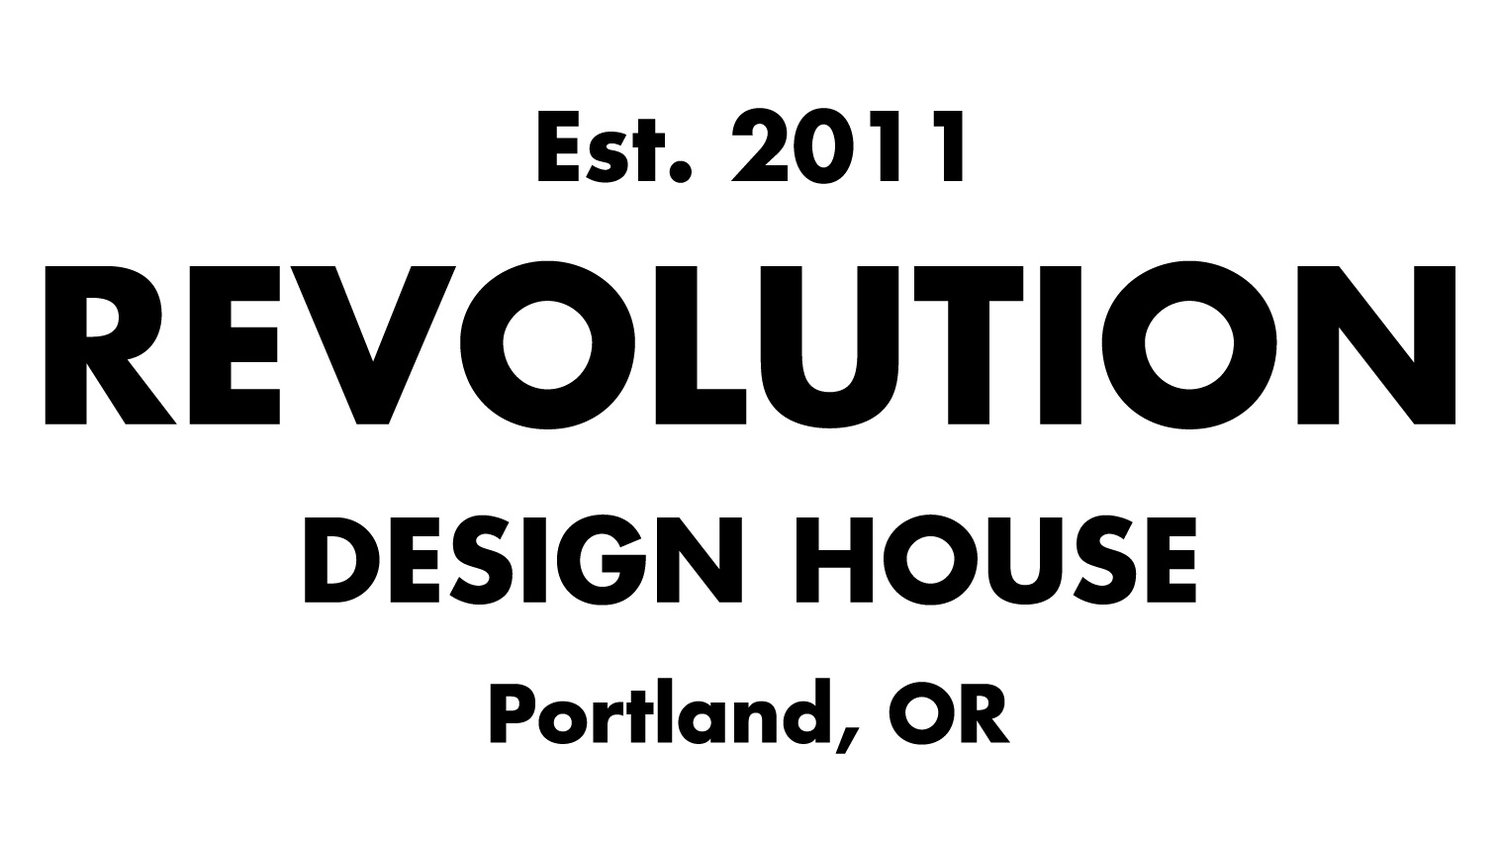 Revolution Design House